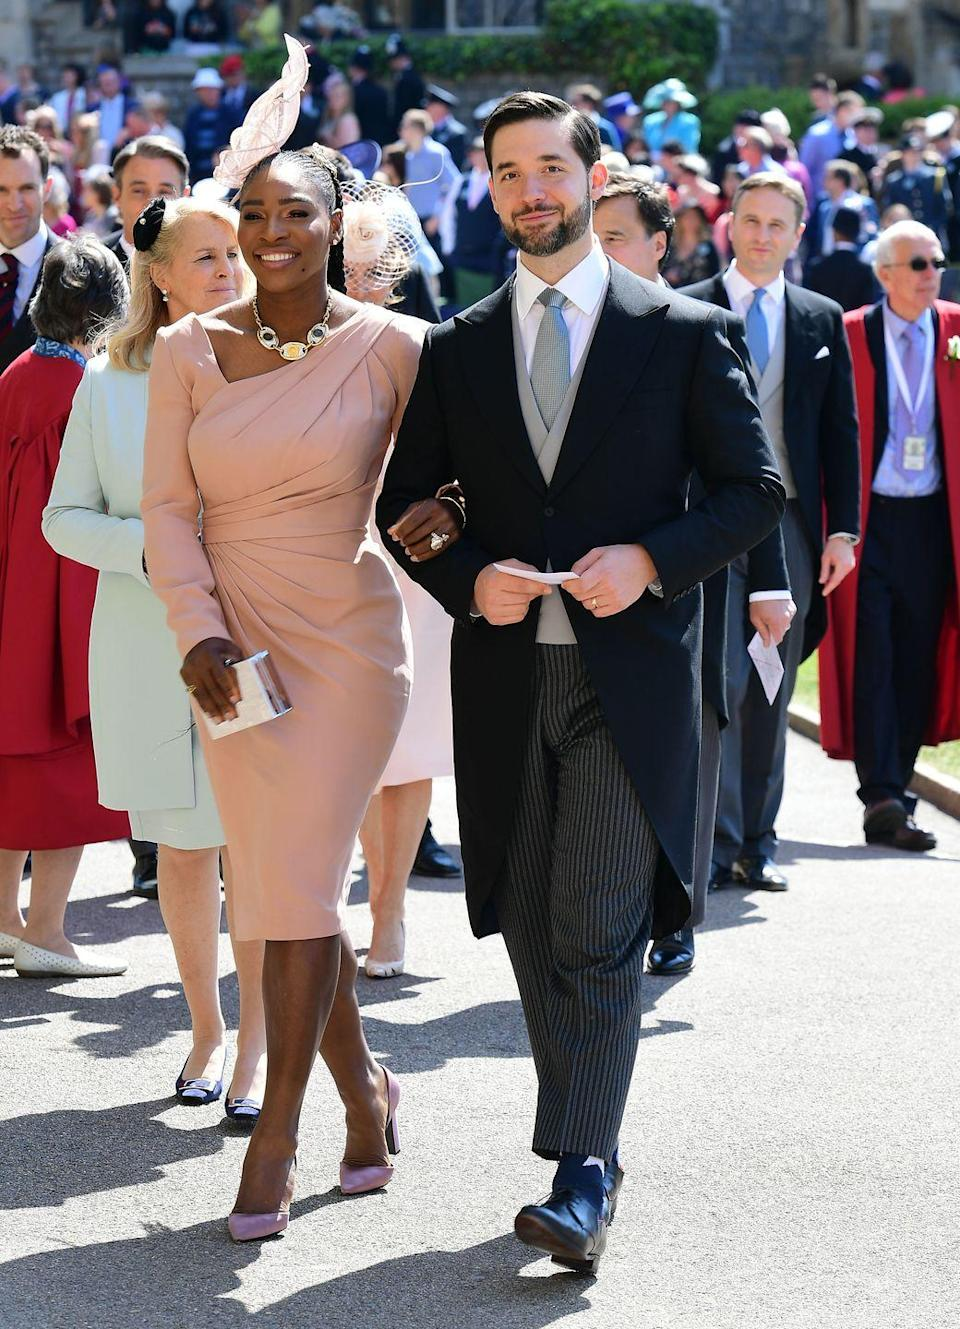 <p>Serena Williams knocked it out the park in her stunning pink structured dress, alongside husband Alexis Ohanian, as they arrived at Meghan and Harry's big day at Windsor Castle. </p>